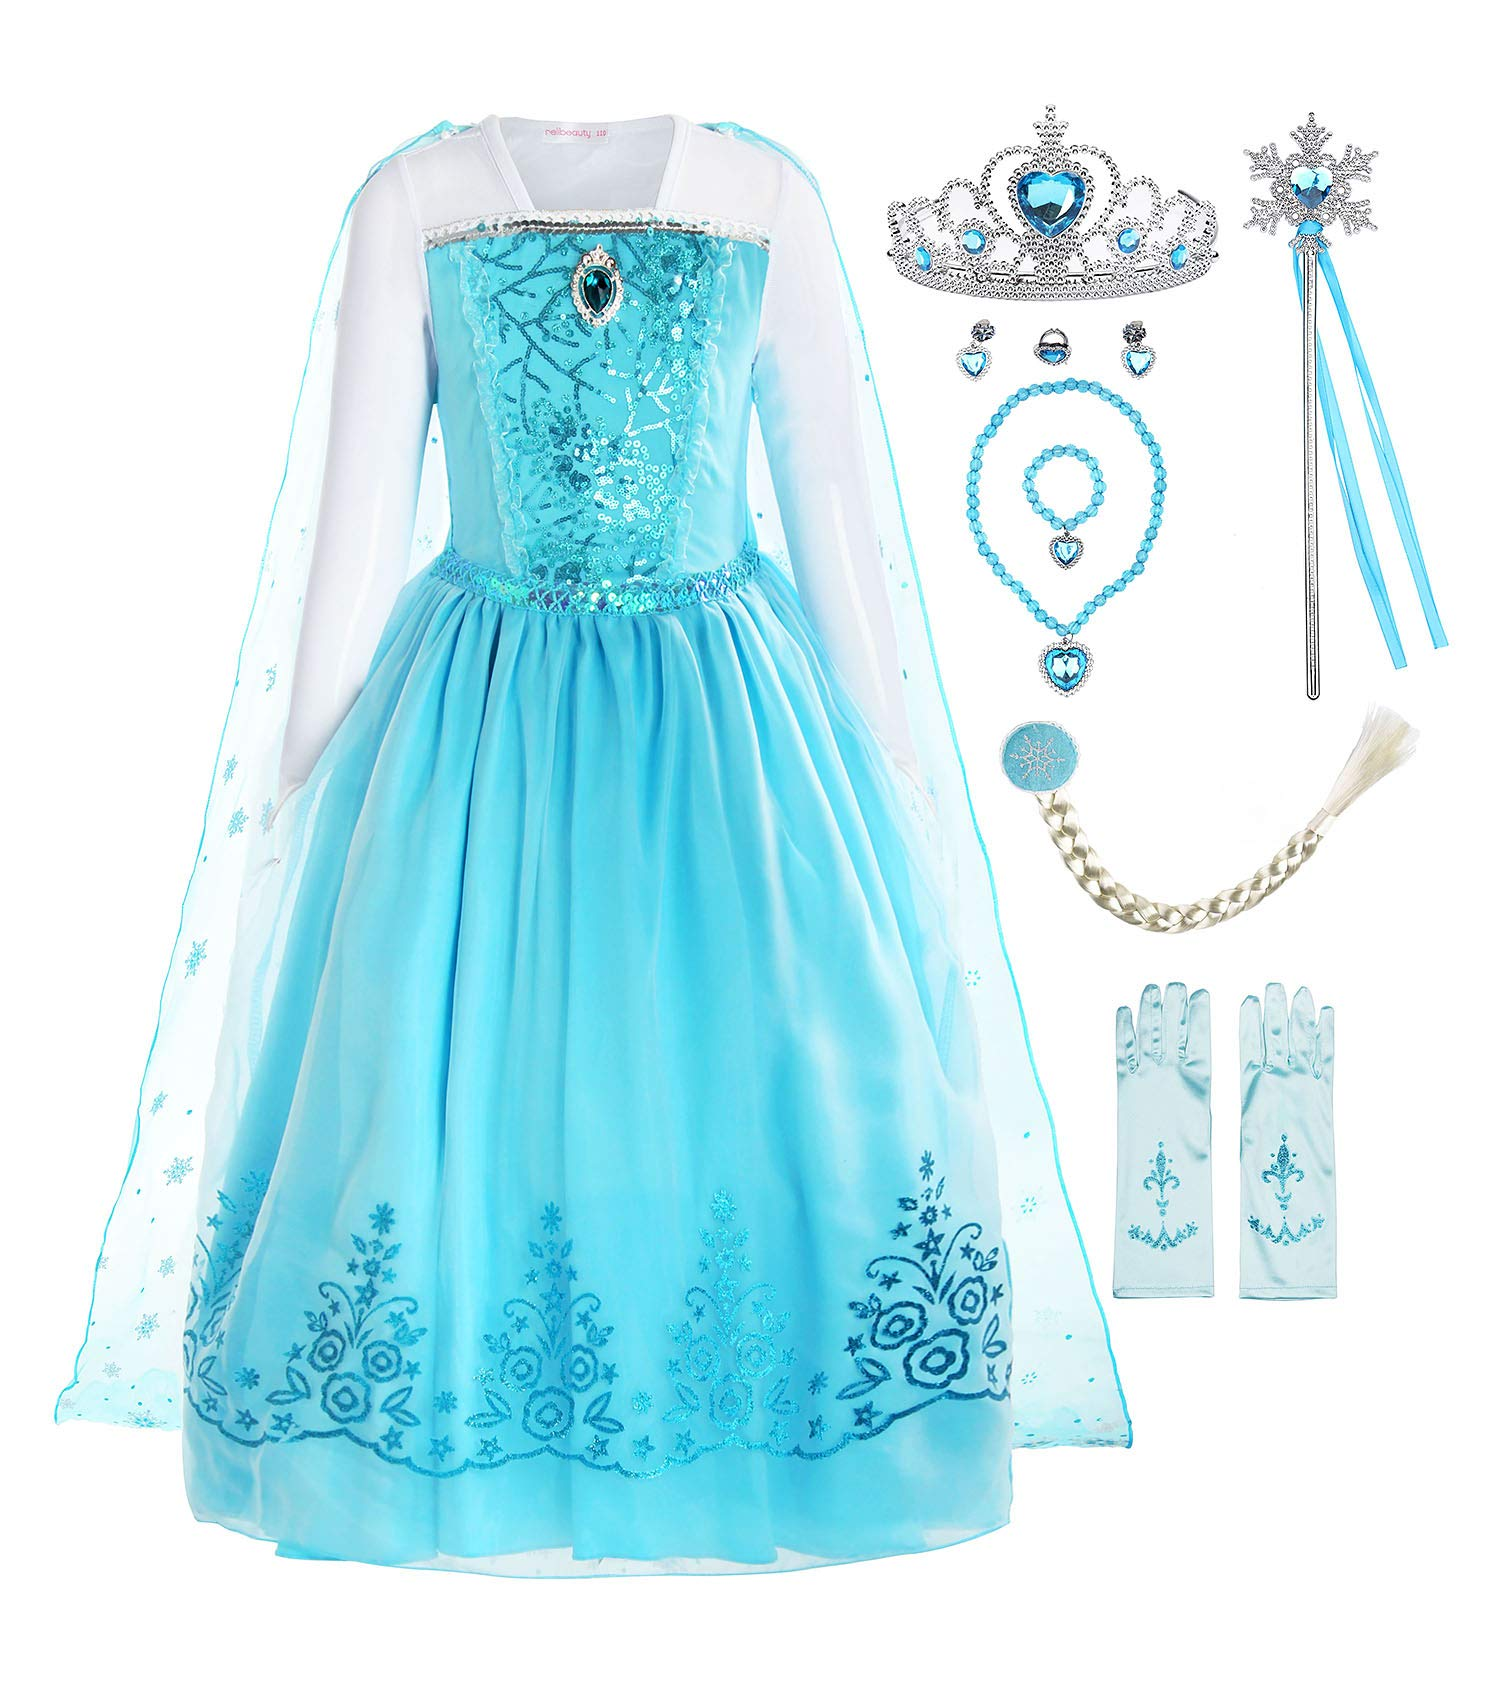 ReliBeauty Girls Sequin Princess Costume Long Sleeve Dress up with Accessories, Light Blue, 5